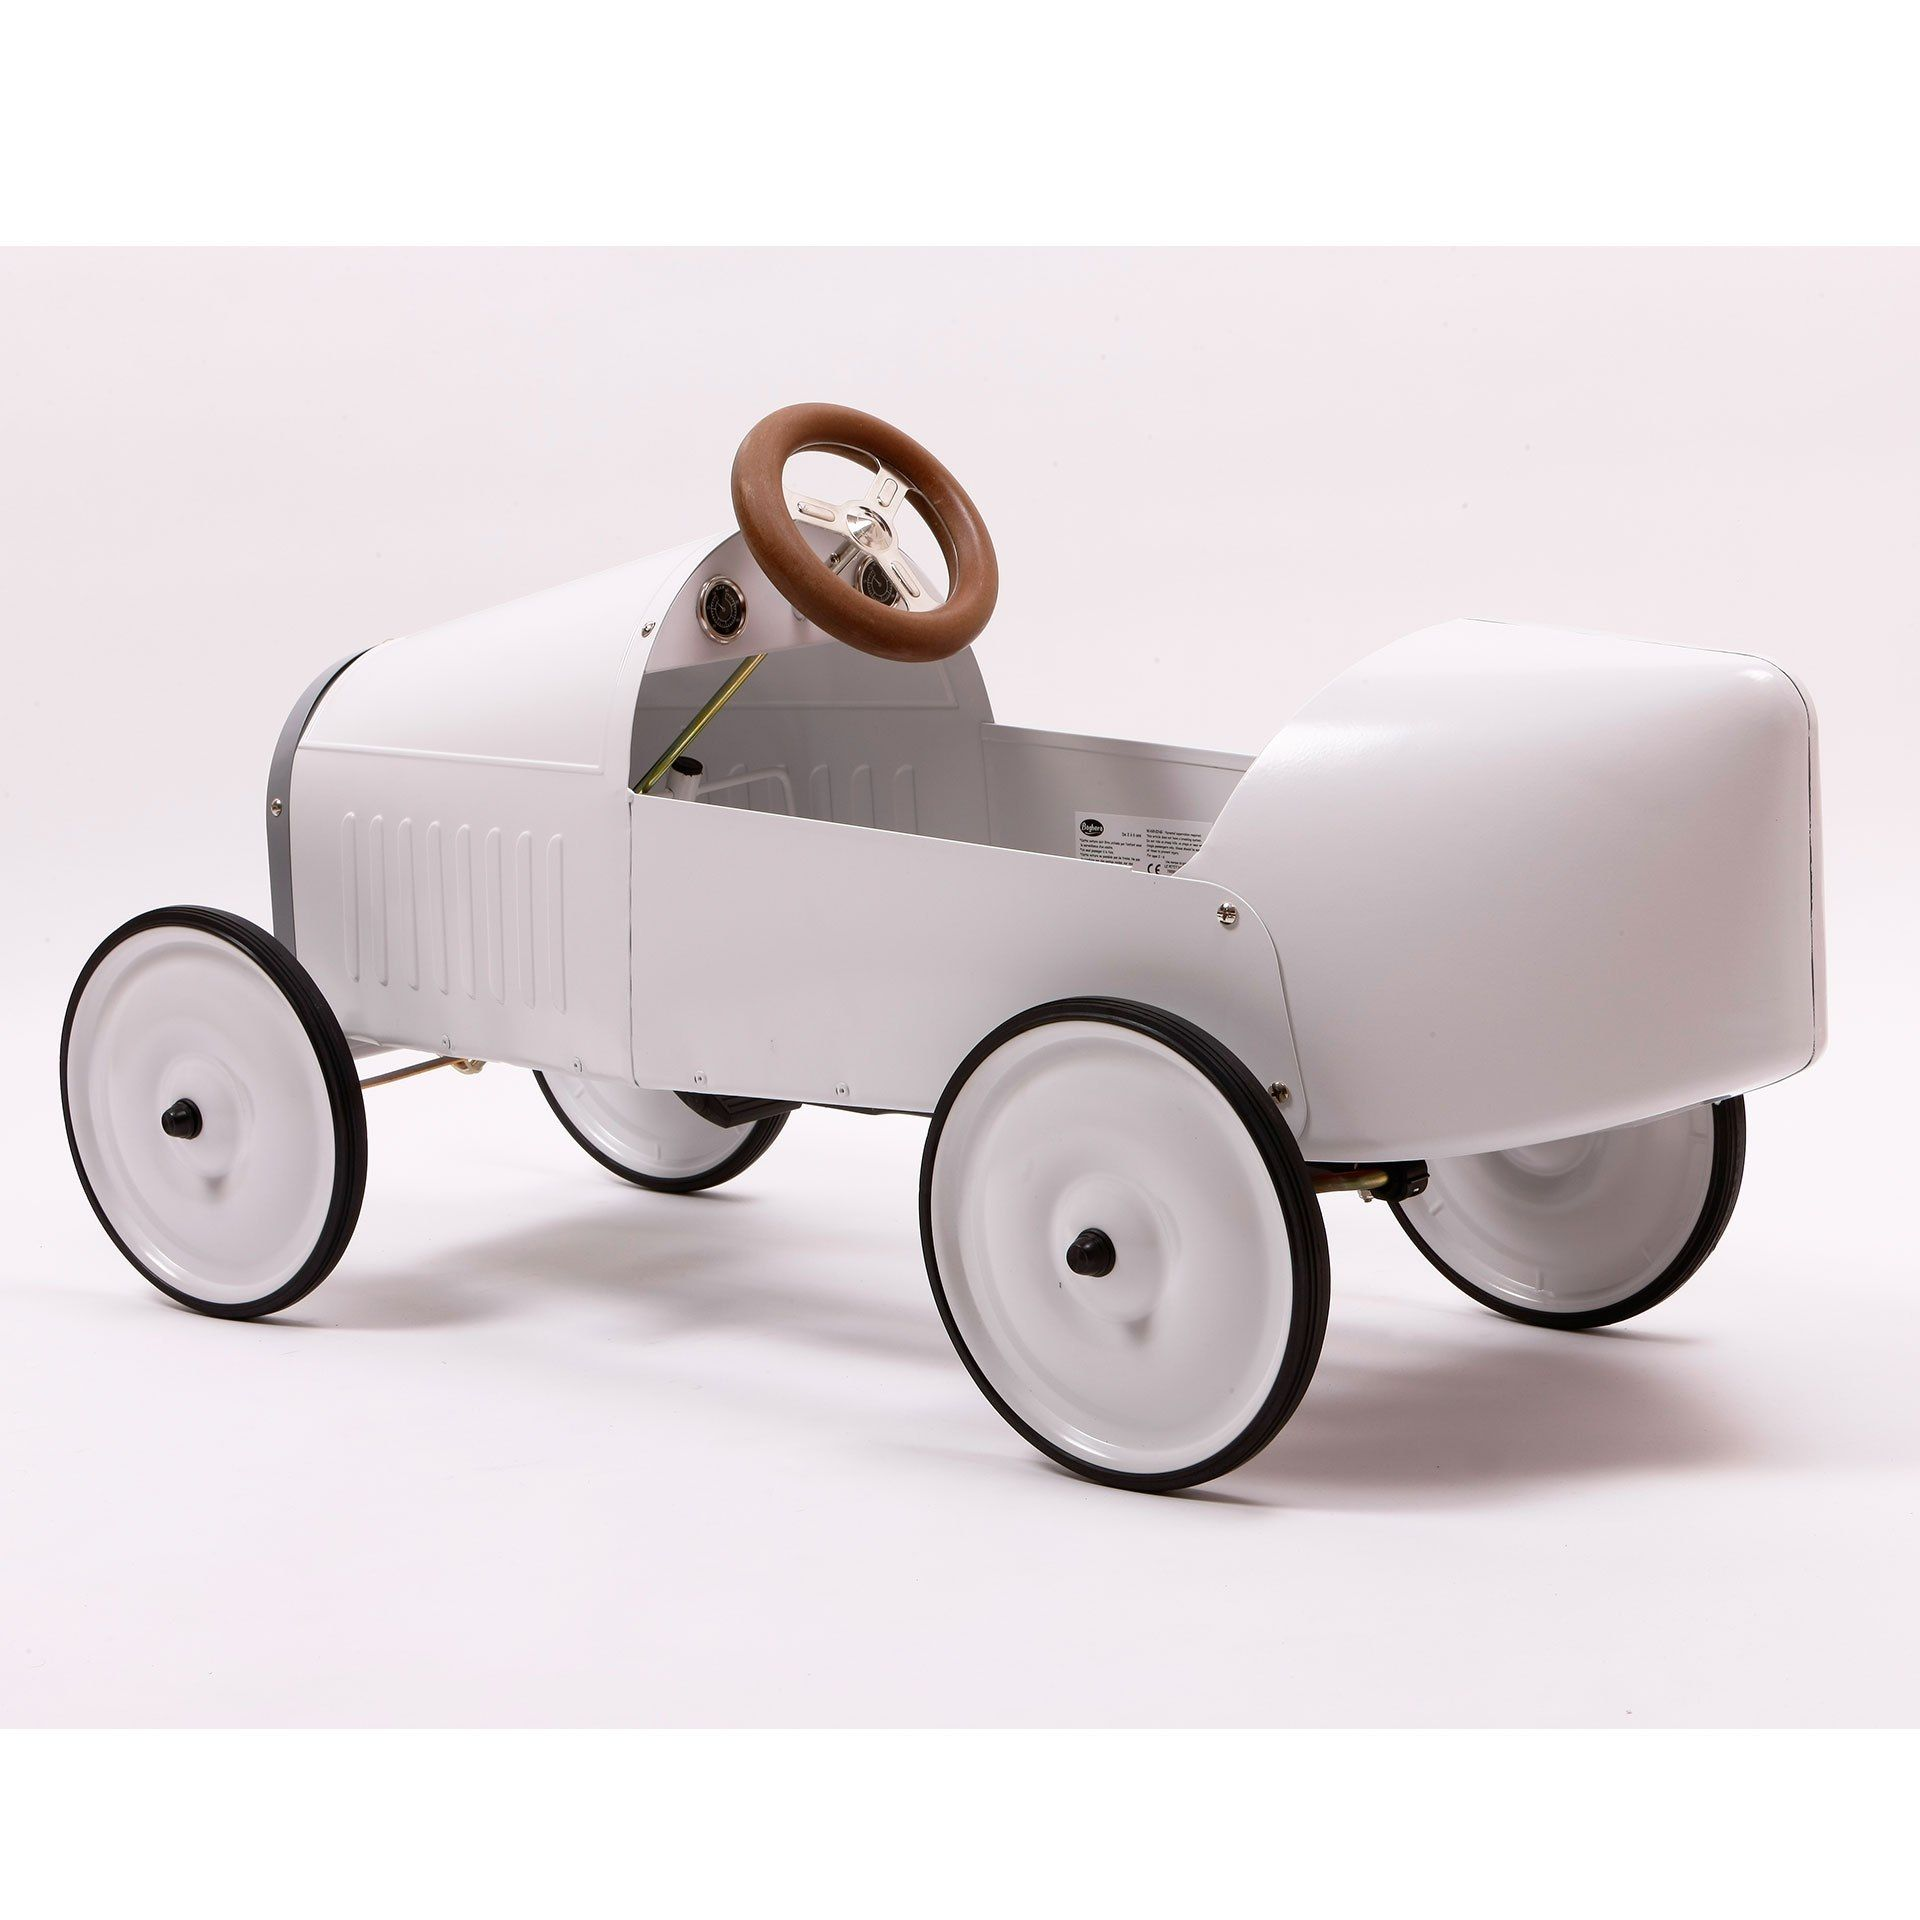 Toys car for baby  Monthlery Do It Yourself pedal car  araba  Pinterest  Kids toys